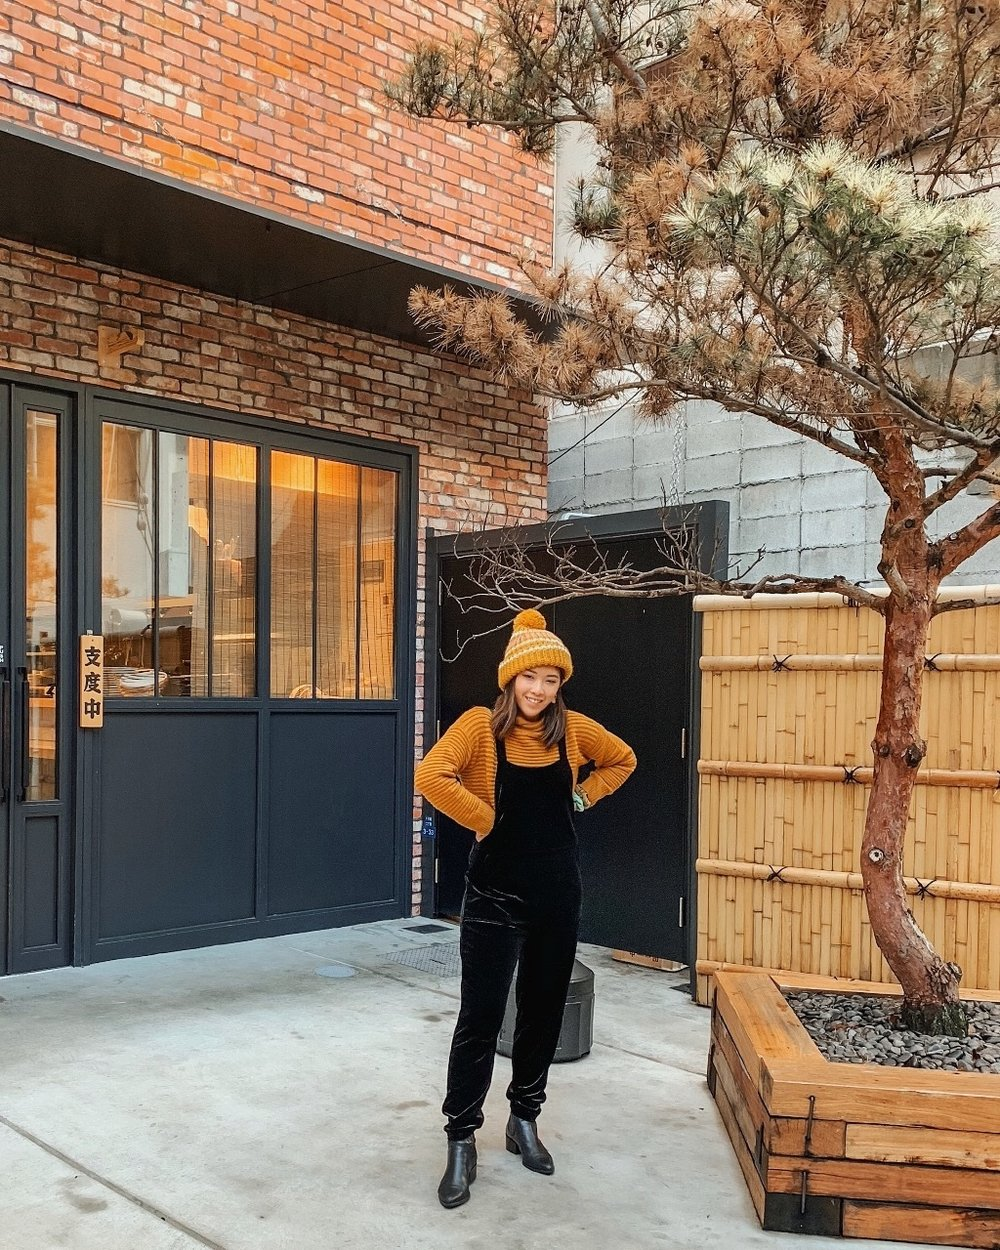 Abercrombie & Fitch Pom Knit Beanie   Urban Outfitters Black Velvet Overalls: Similar Style  Here    Madewell Belmont Mockneck Sweater in Coziest Yarn : Additional 40% off on top of sale price! I am wearing size XS   Vagabond Marja Chelsea Boots